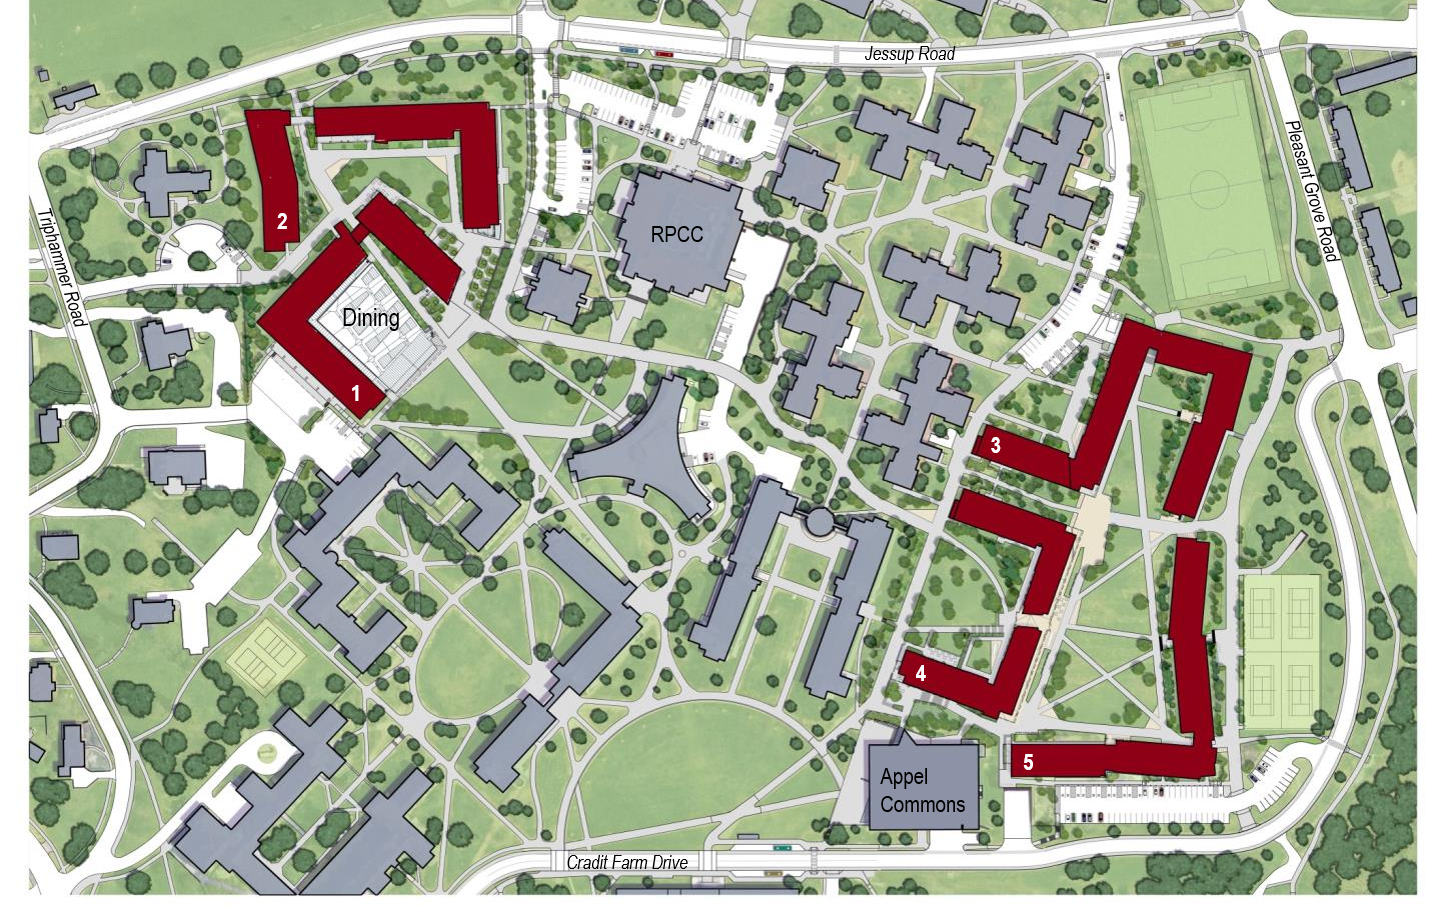 Site map outlining where the NCRE developments will be built on north campus. Top left corner near Jessup Rd. and bottom right corner near Appel Commons and Cradit Farm Drive